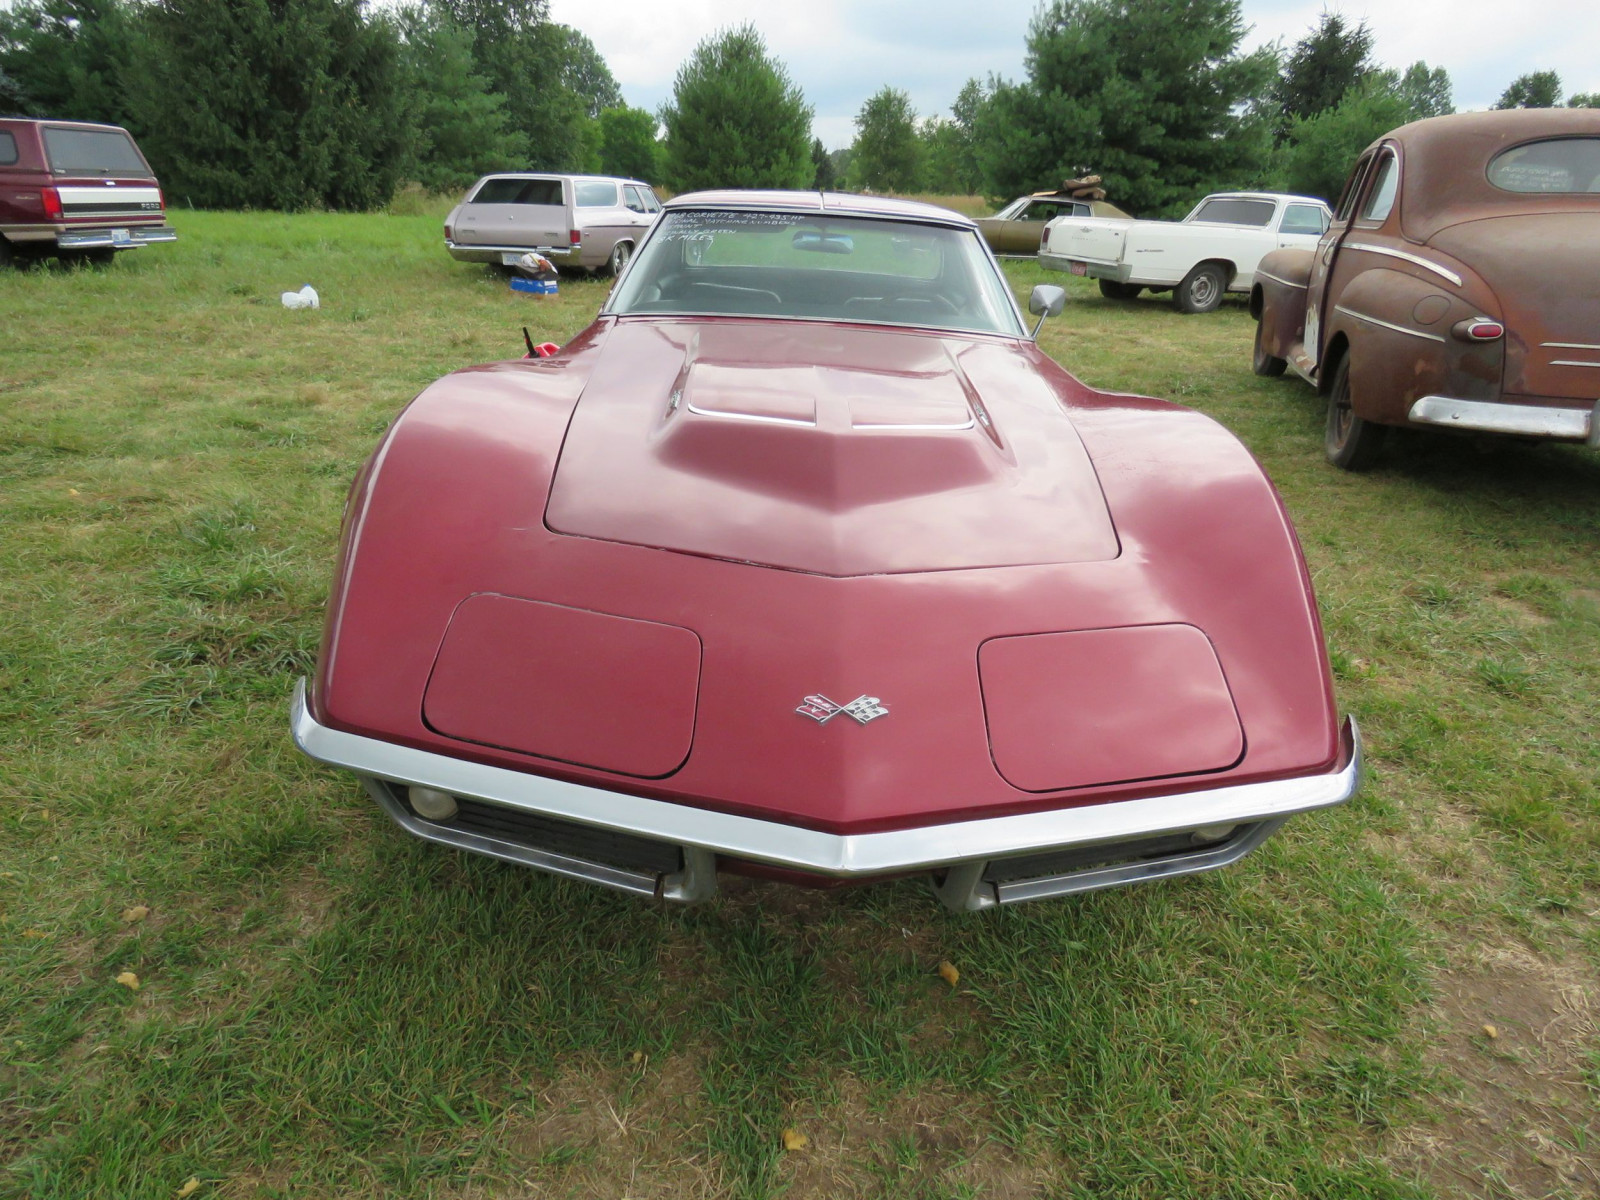 1968 Chevrolet Corvette Stingray Coupe - Image 2